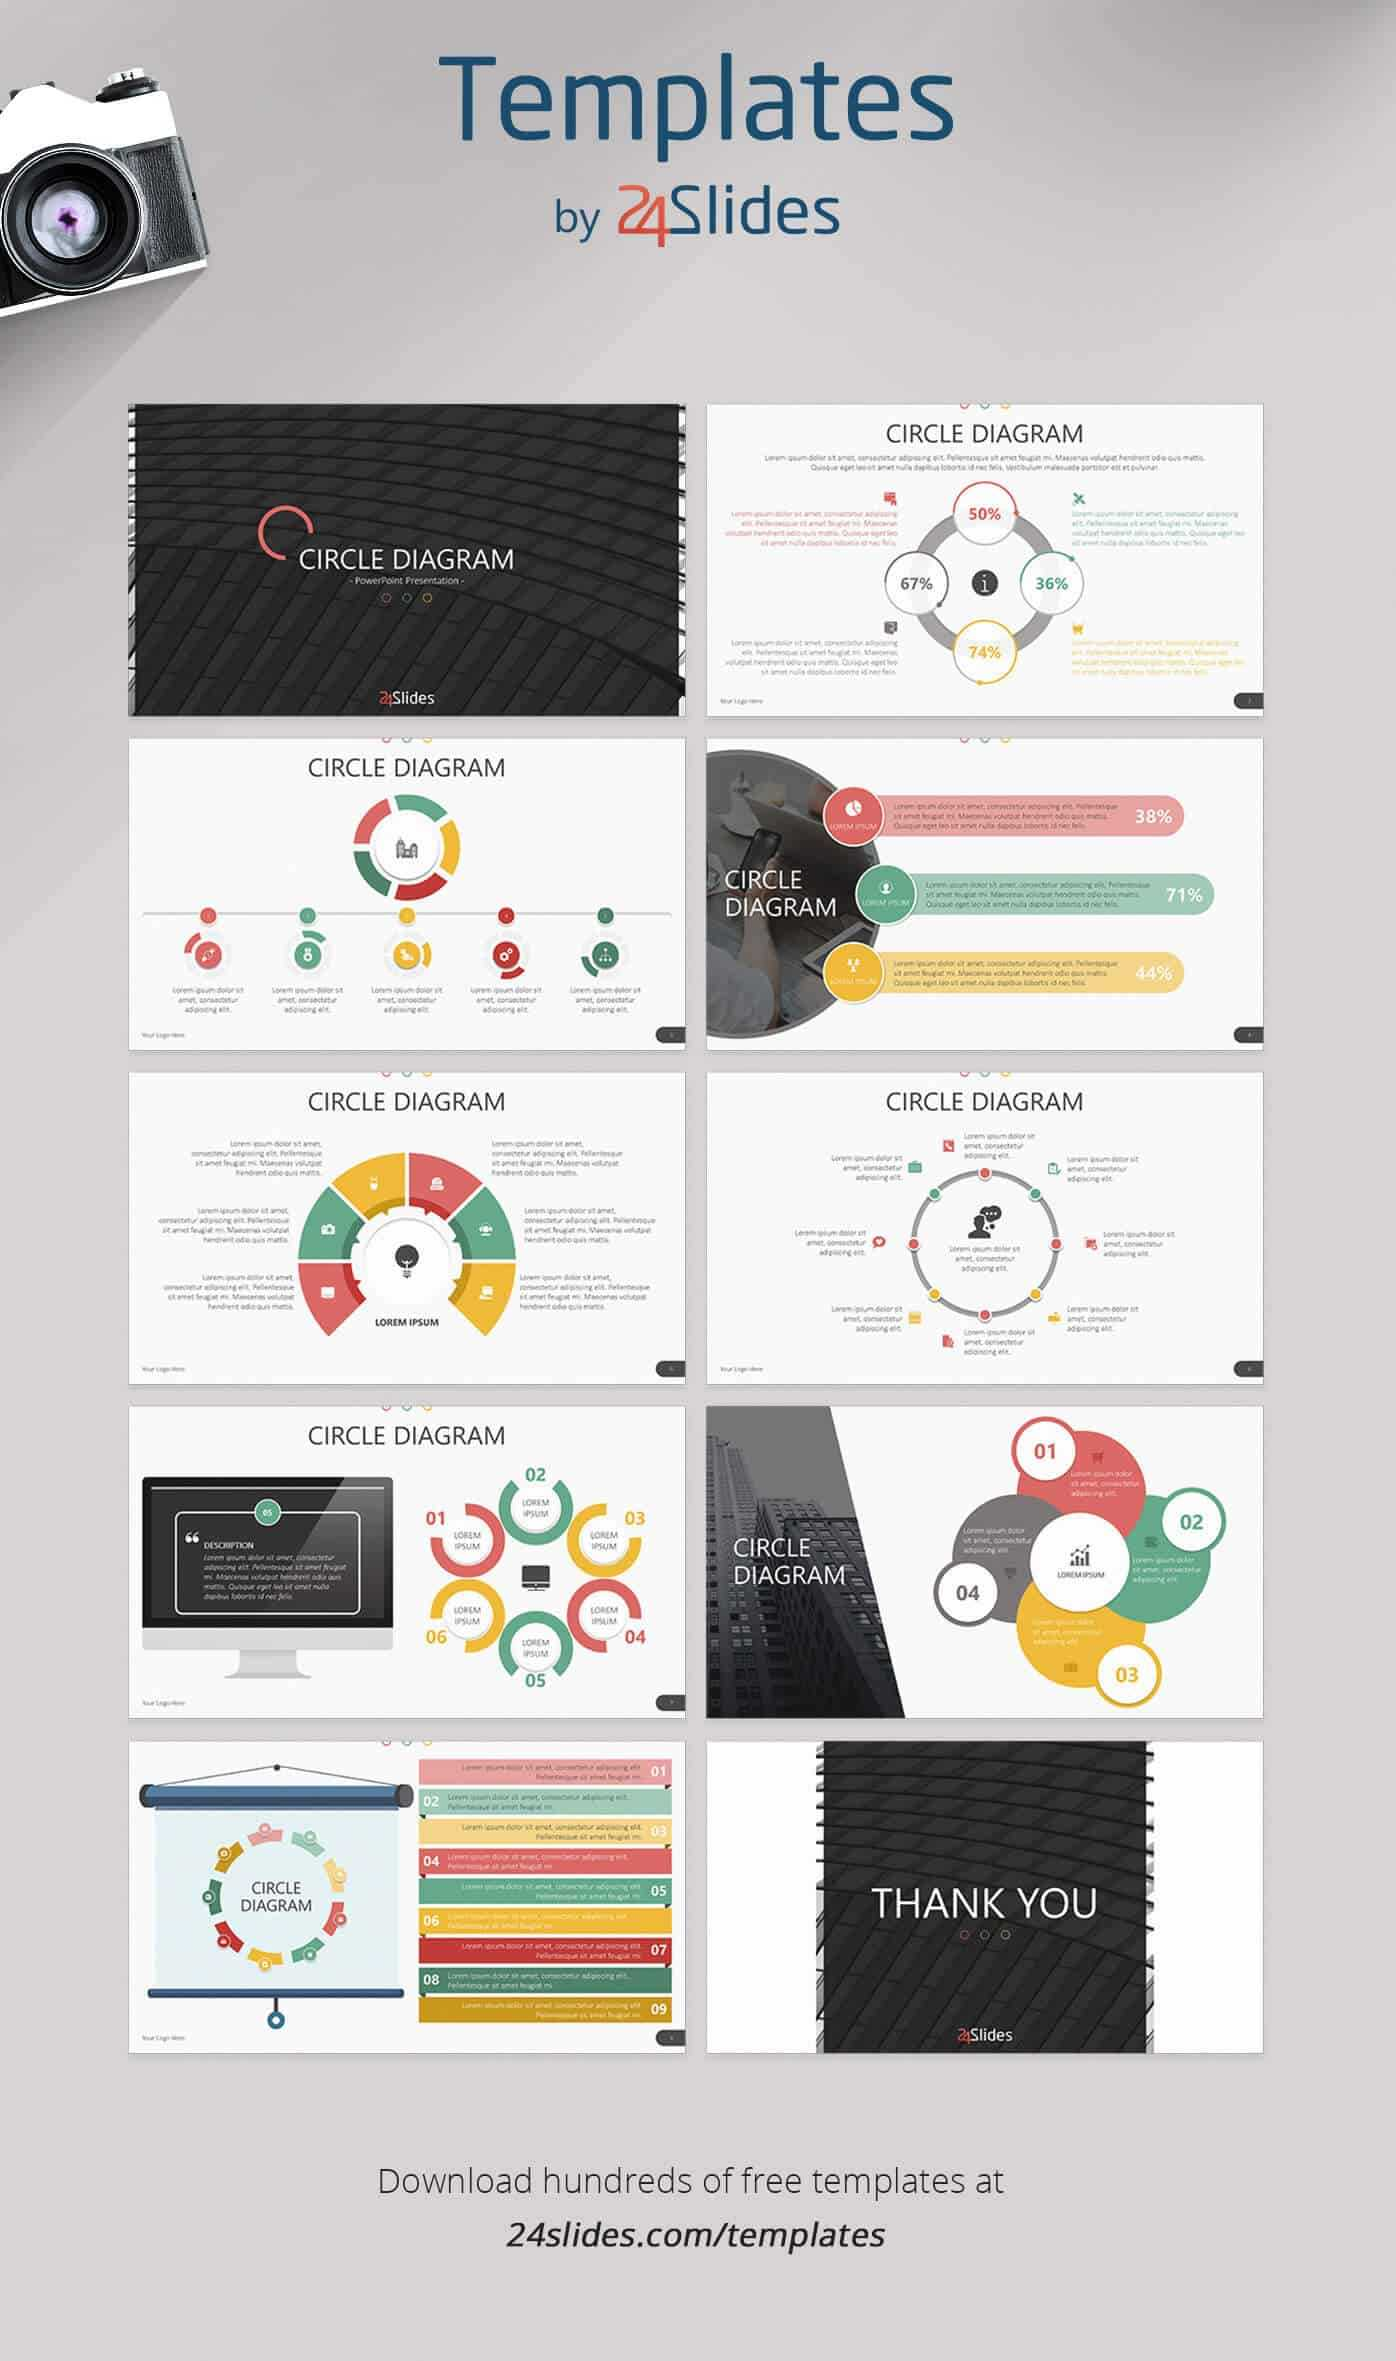 15 Fun And Colorful Free Powerpoint Templates | Present Better Within Sample Templates For Powerpoint Presentation